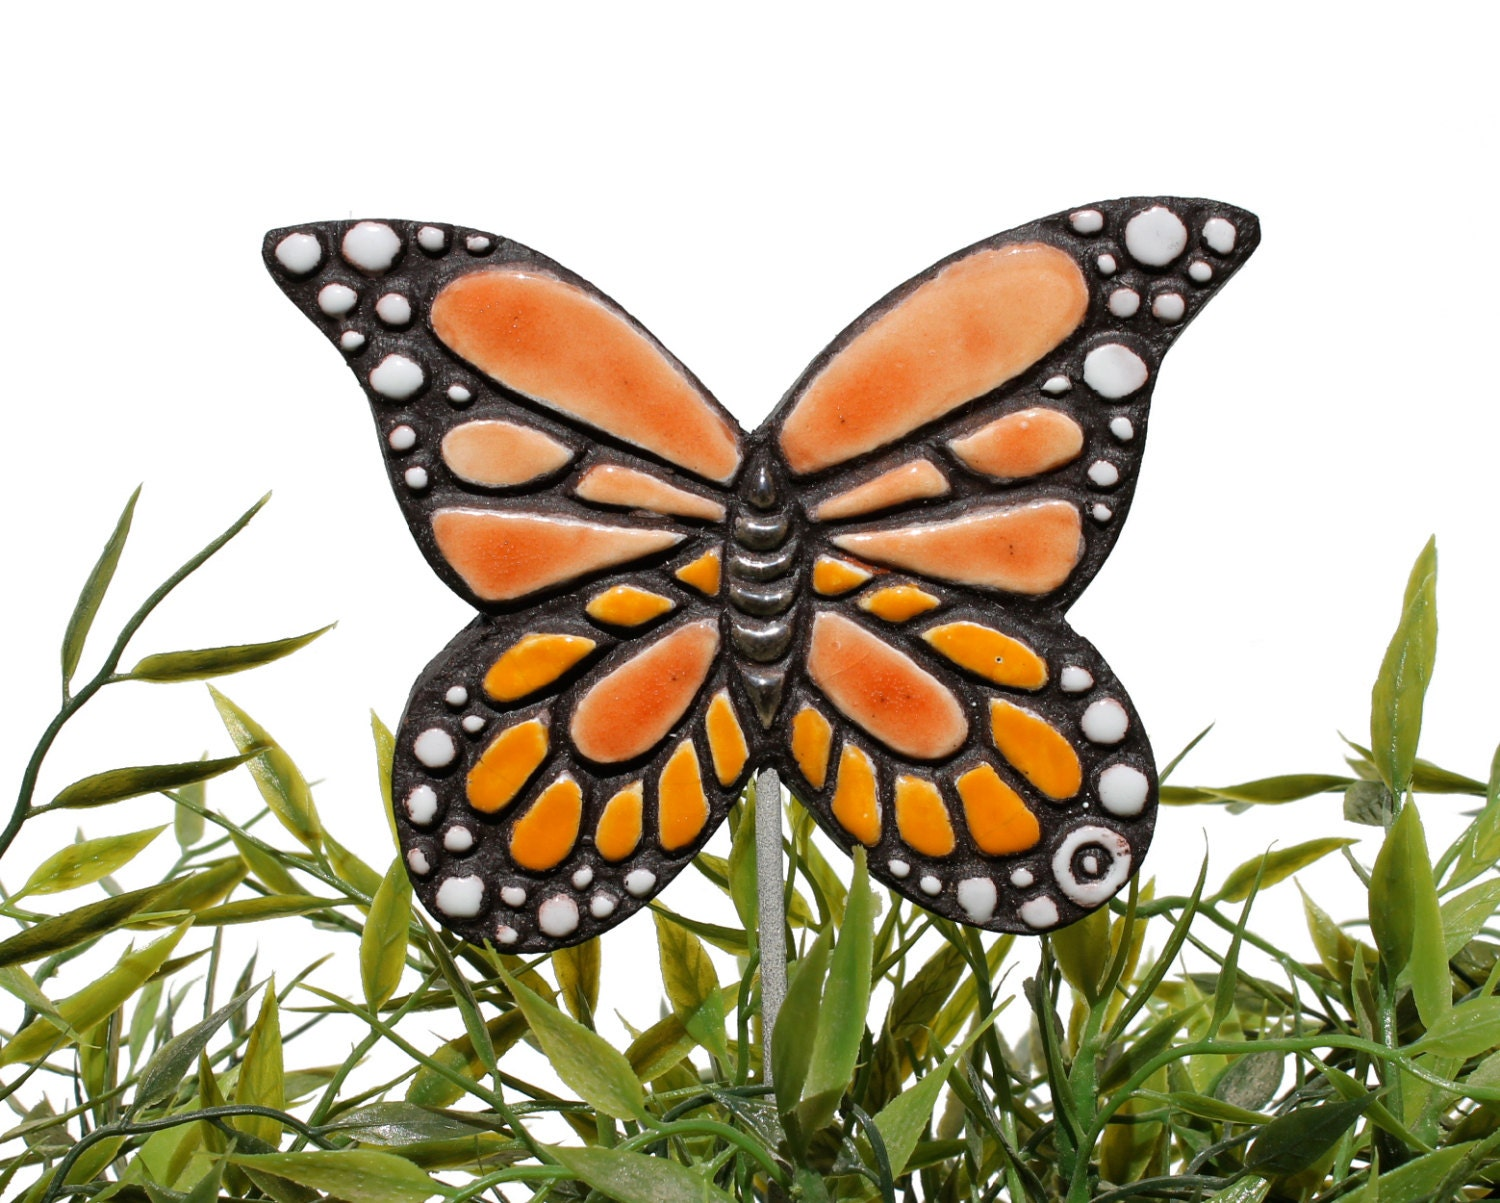 Butterfly garden art plant stake garden decor by gvega on etsy for Outdoor butterfly ornaments